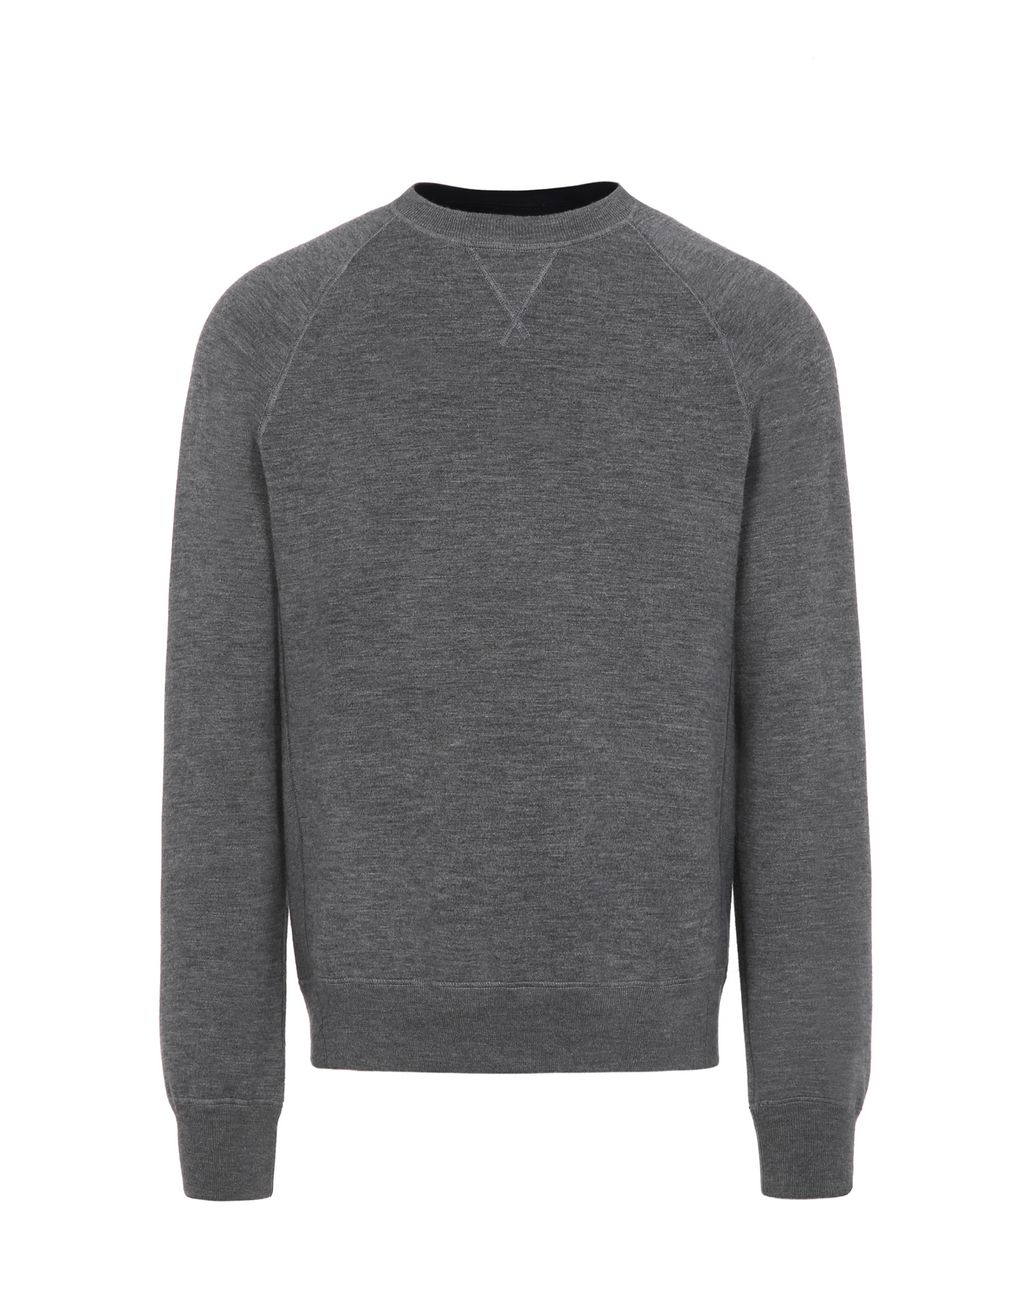 BRIONI Grey Reversible Crewneck Sweater Knitwear Man f